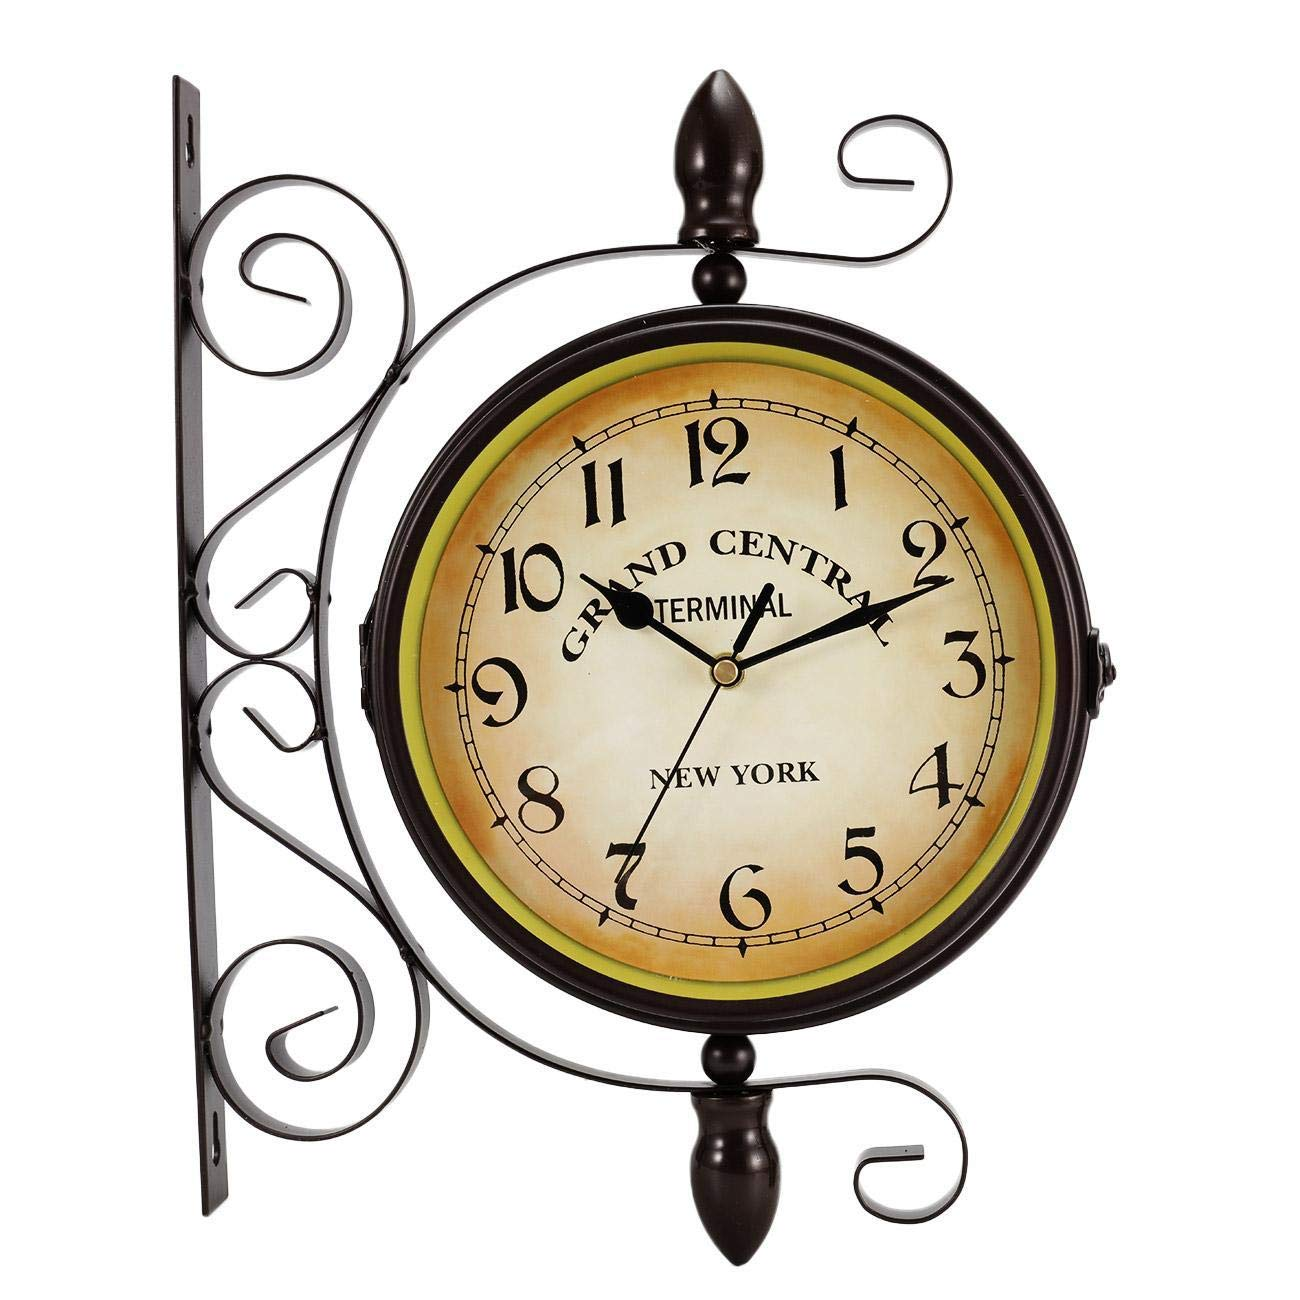 Double Sided Wall Clock, Wrought Iron Vintage Station Clock Two Faces Dual side Antique Vintage Circle Station Wall Side Hanging Clock with Scroll Wall Side Mount Home D cor Wall Clock, 8-inch